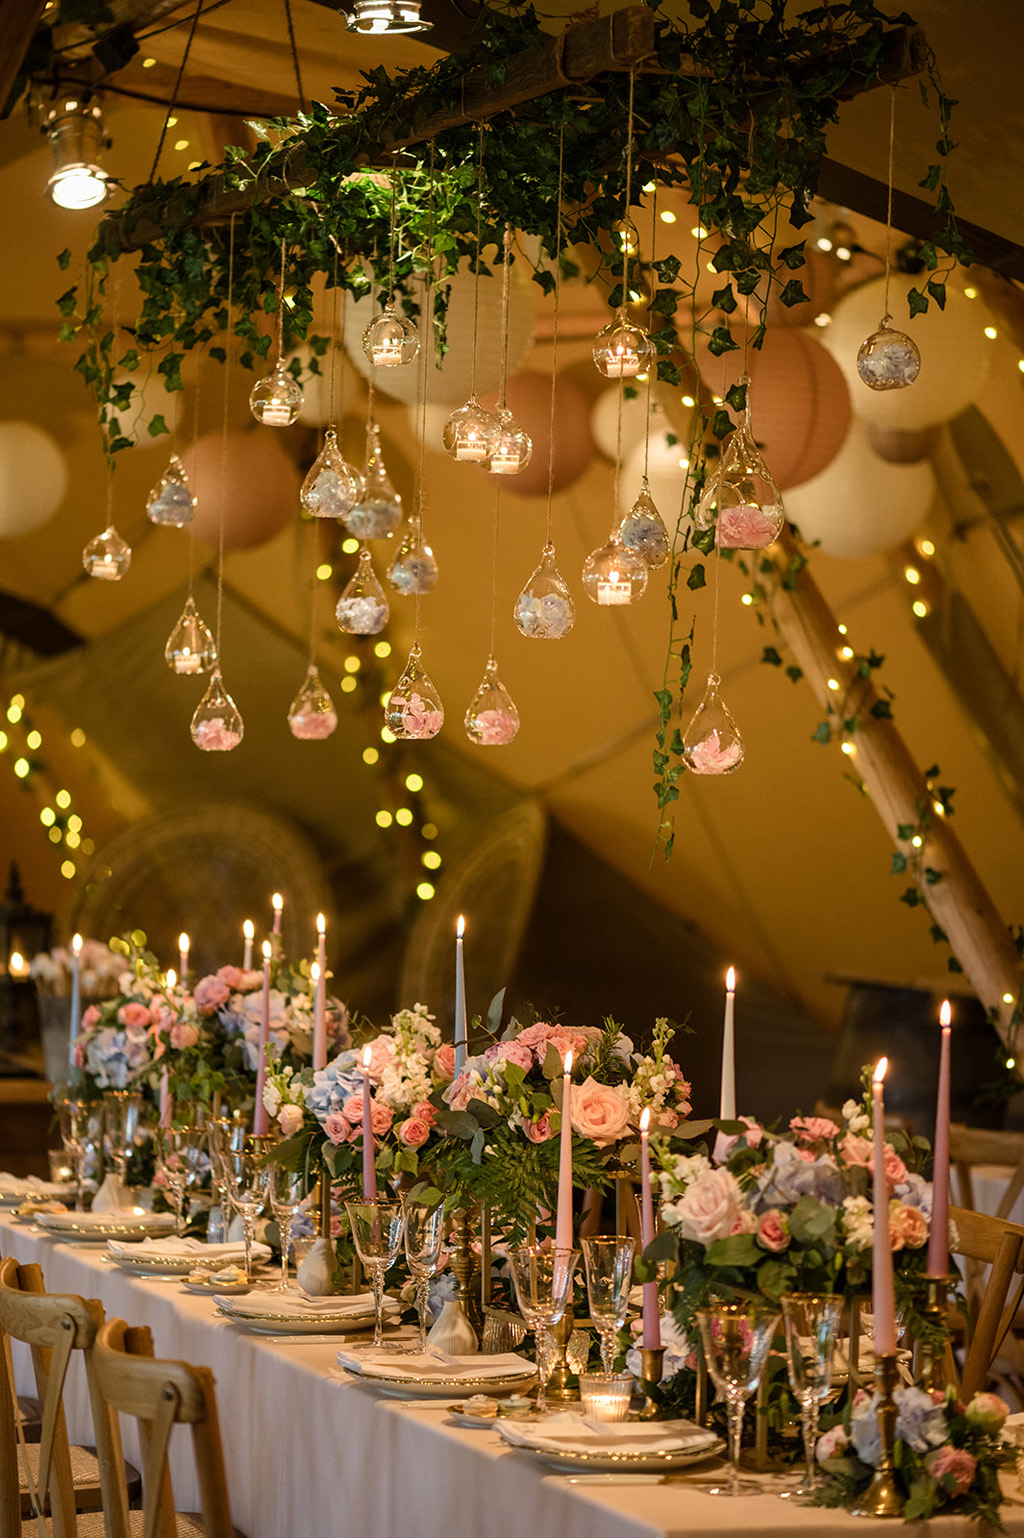 opulent table styling with candles and twinkly lights, blue and pink florals inside a teepee for a boho wedding